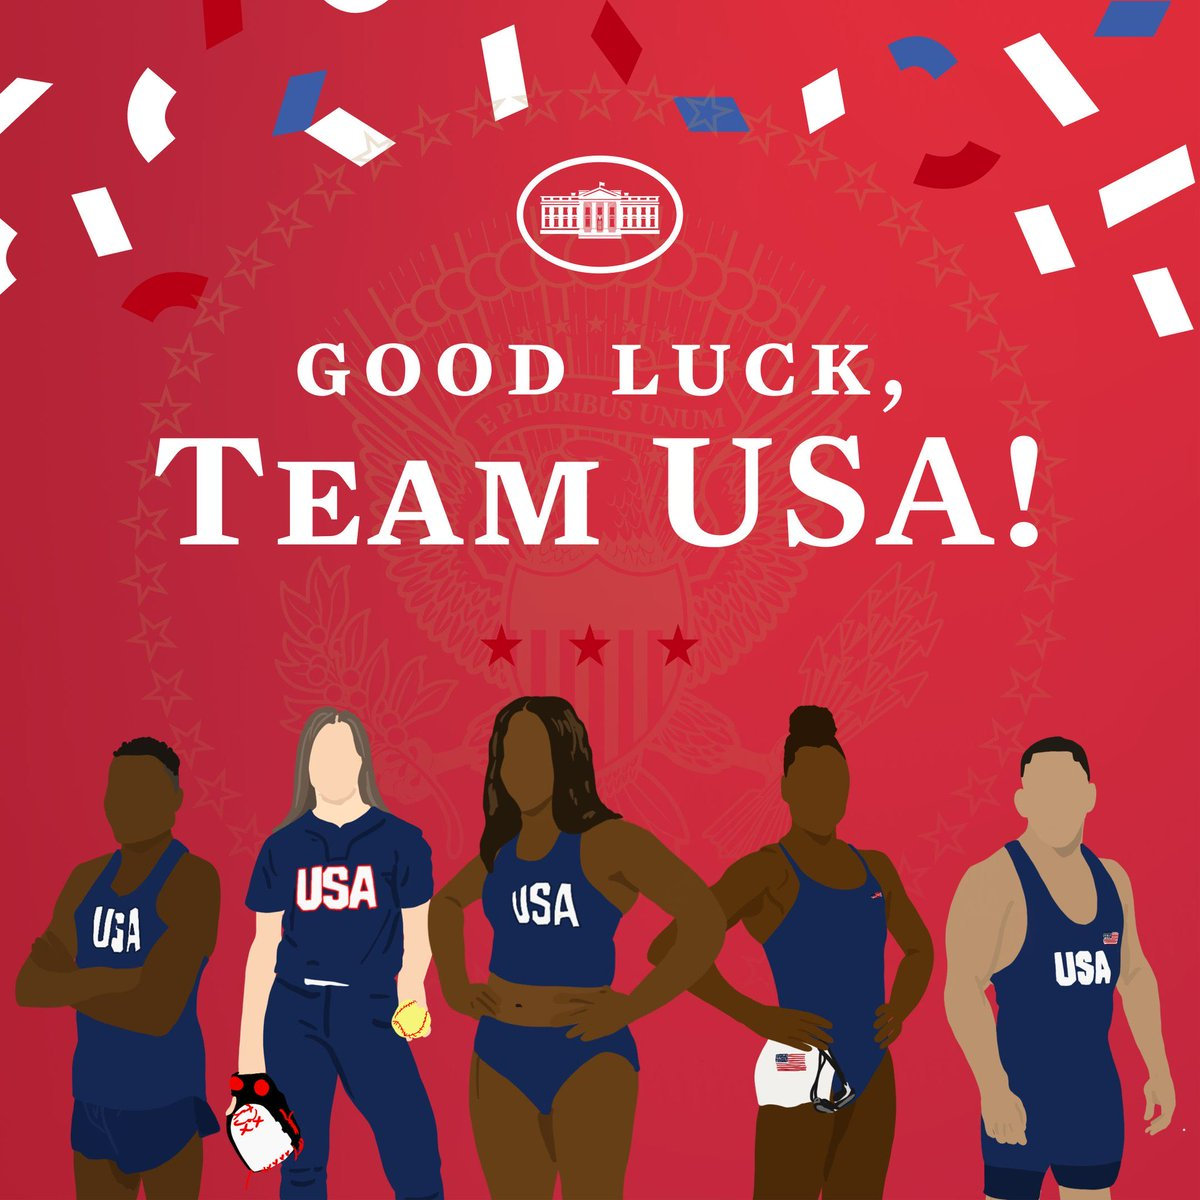 We're cheering you on every step of the way @TeamUSA! https://t.co/SyvZydvsaj